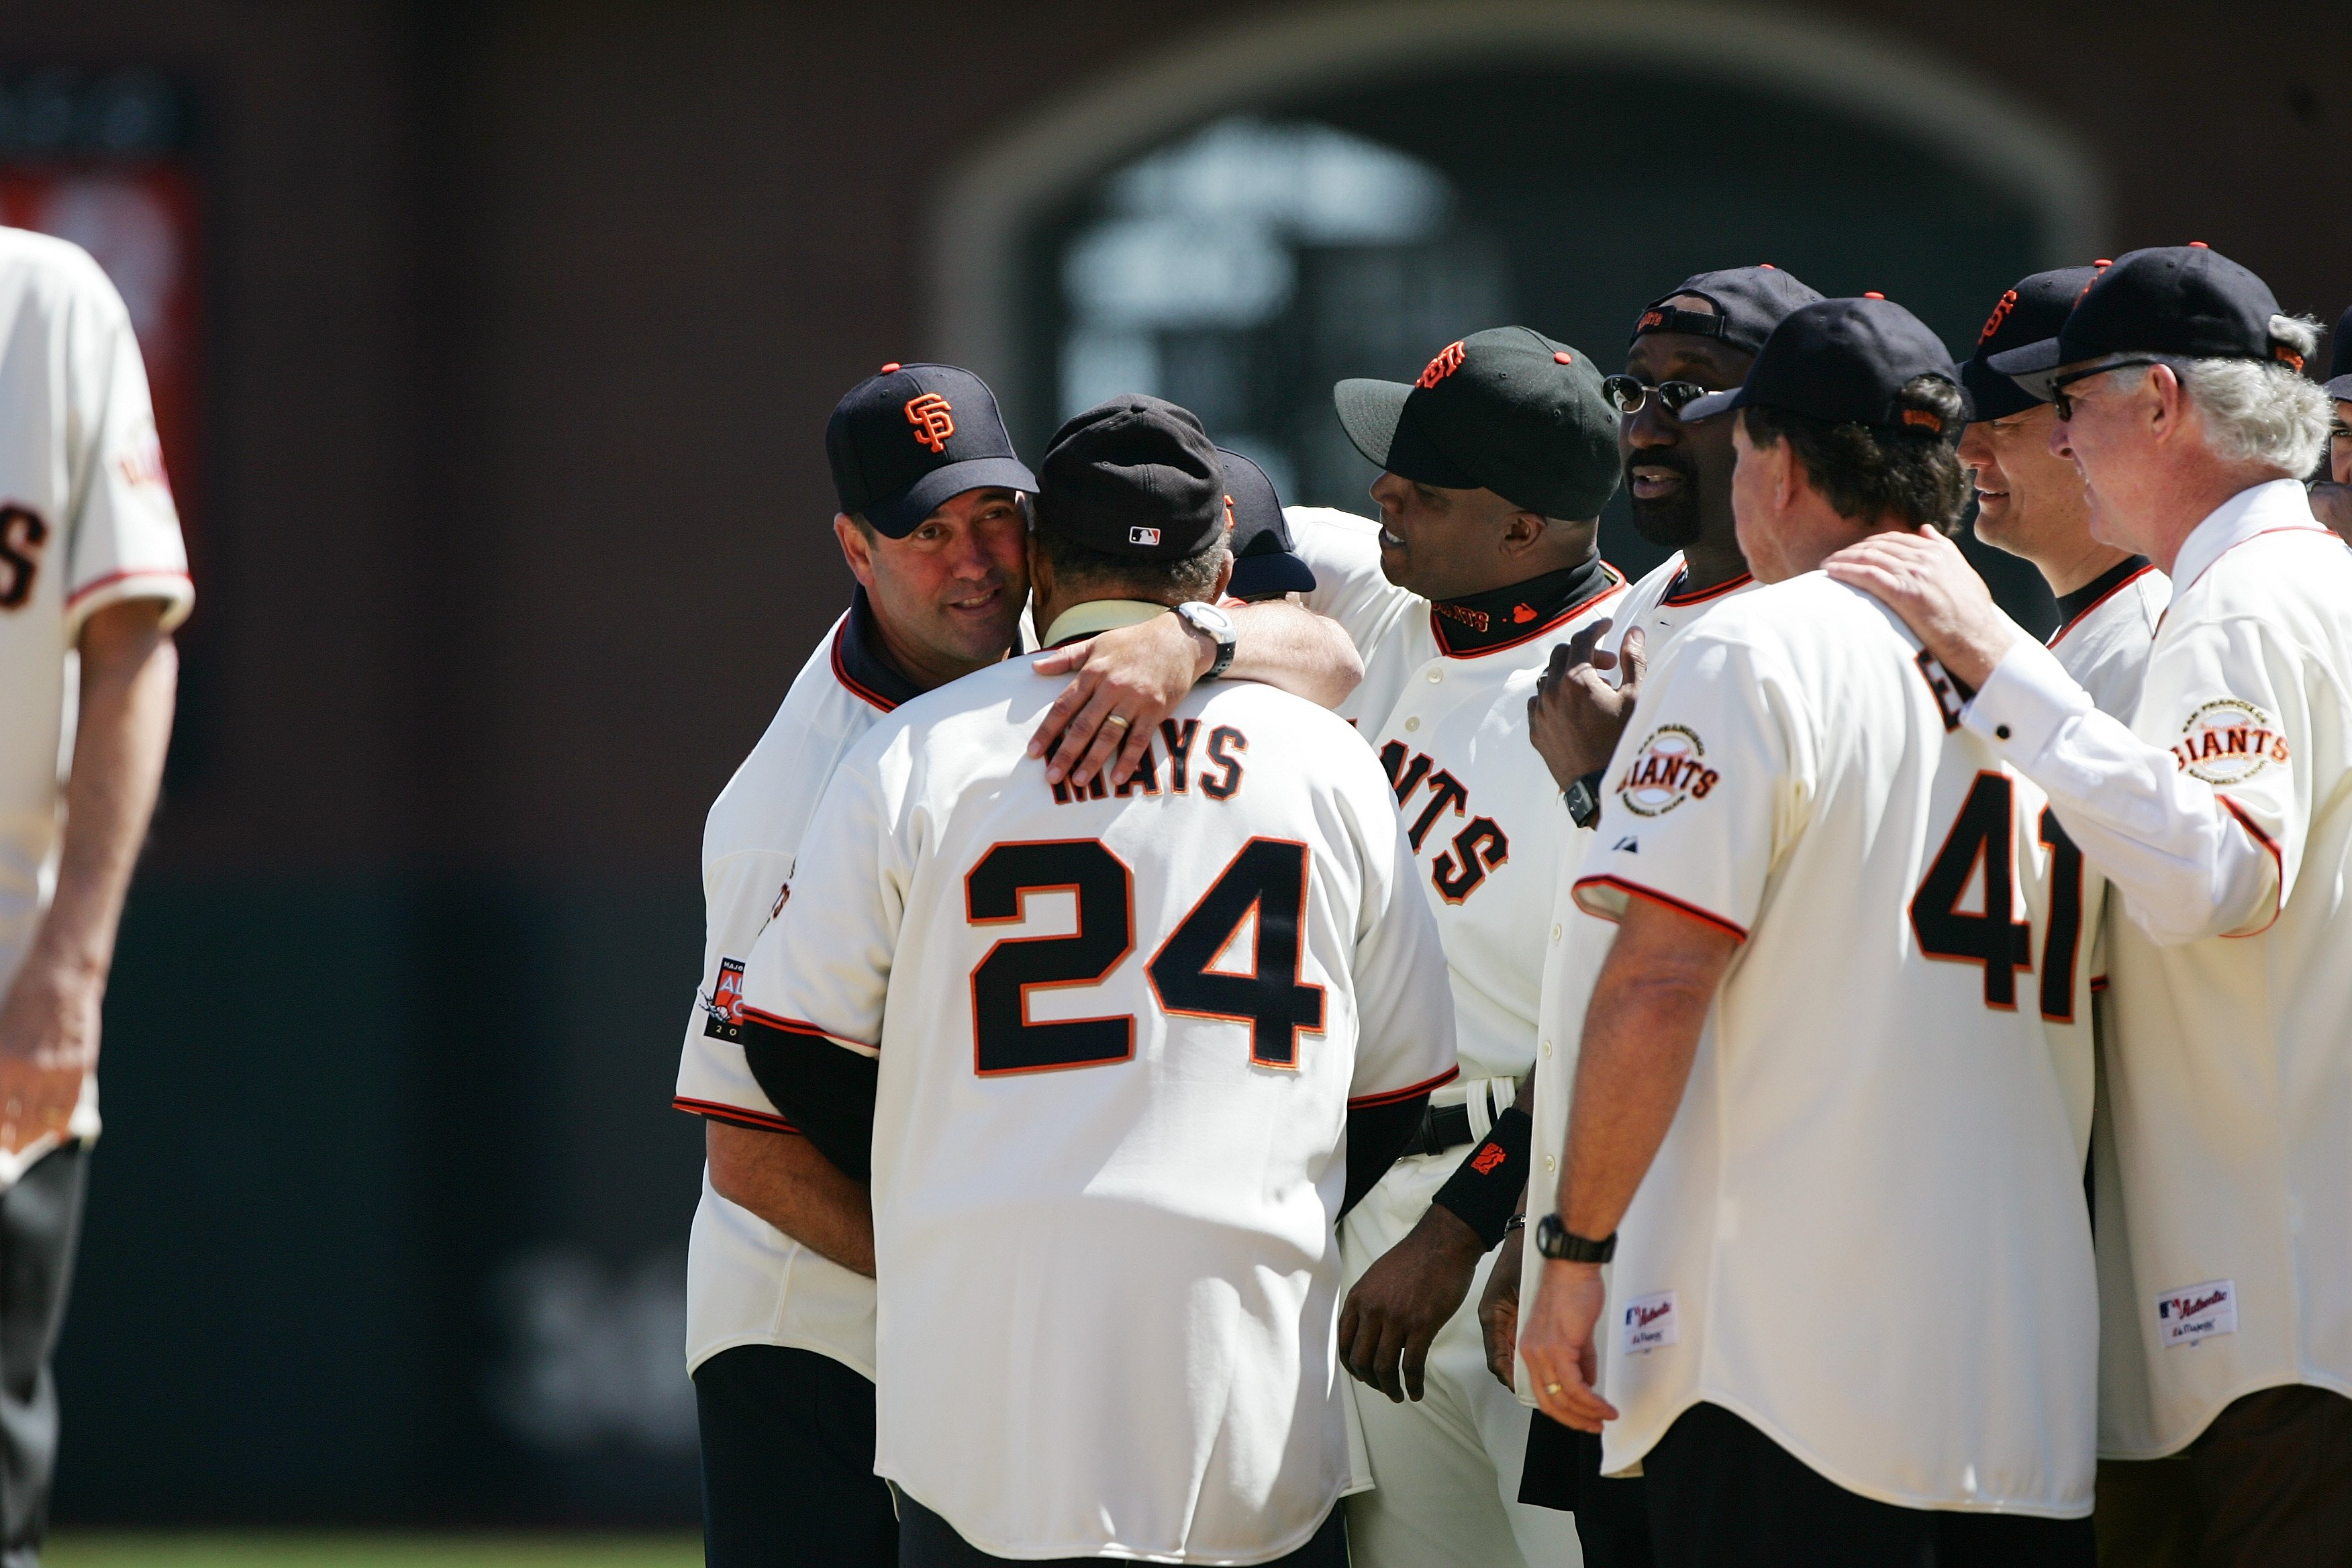 SAN FRANCISCO - APRIL 3:  Former San Francisco Giants player Will Clark greets Willie Mays during a pregame ceremony before the game against the San Diego Padres during Opening Day on April 3, 2007 at AT&T Park in San Francisco, California. The Padres won